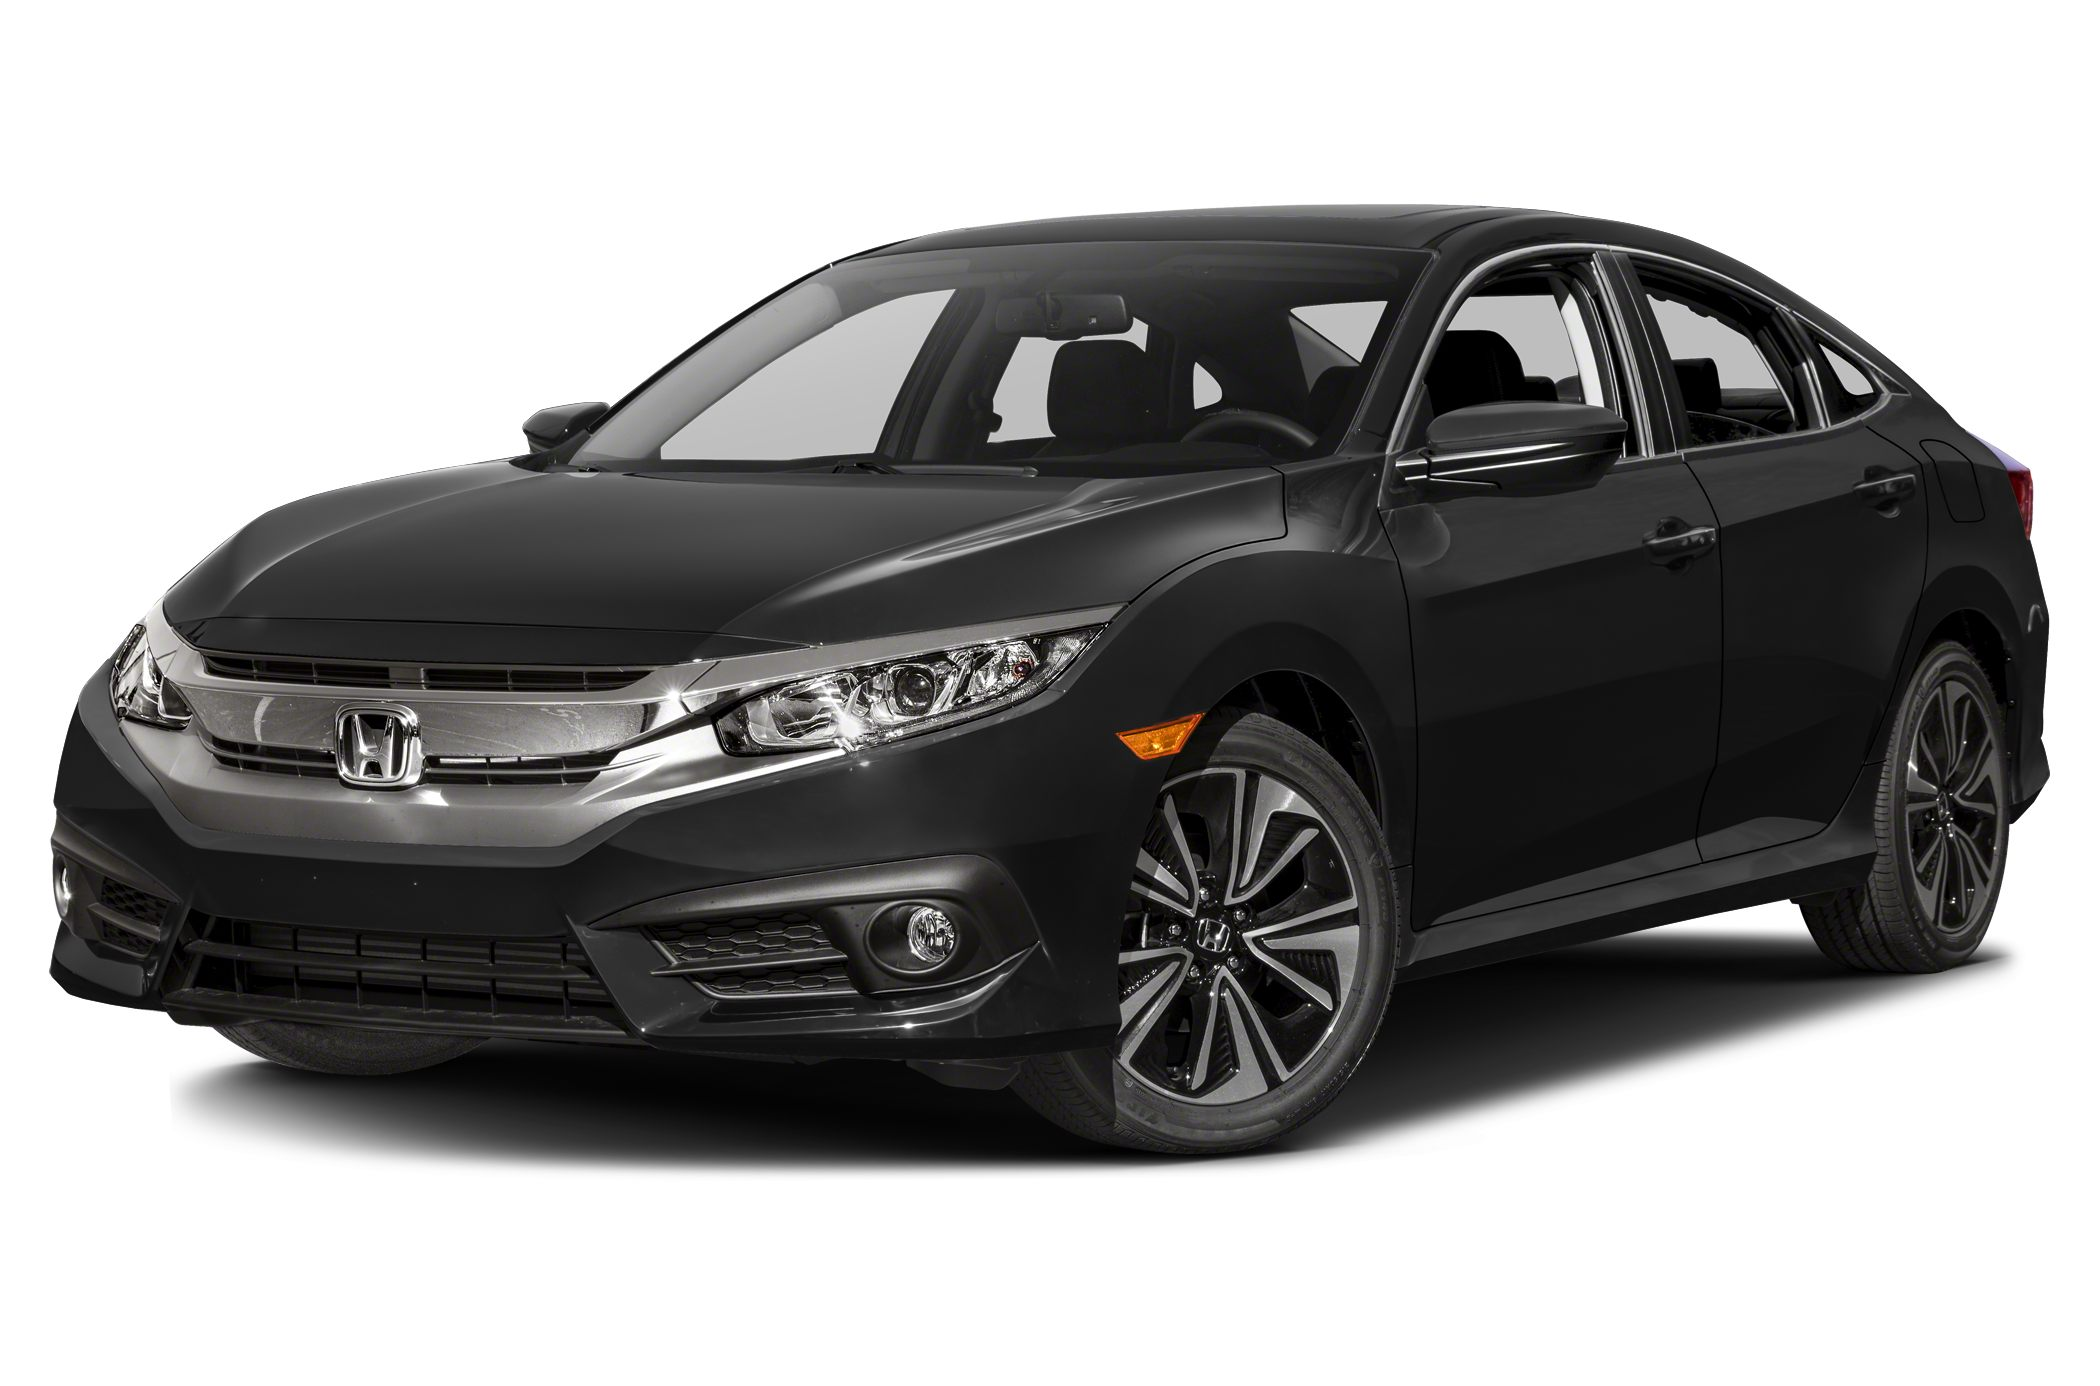 2016 Honda Civic EX-L w Navigation Traction control keeps you from slip sliding away Take charge